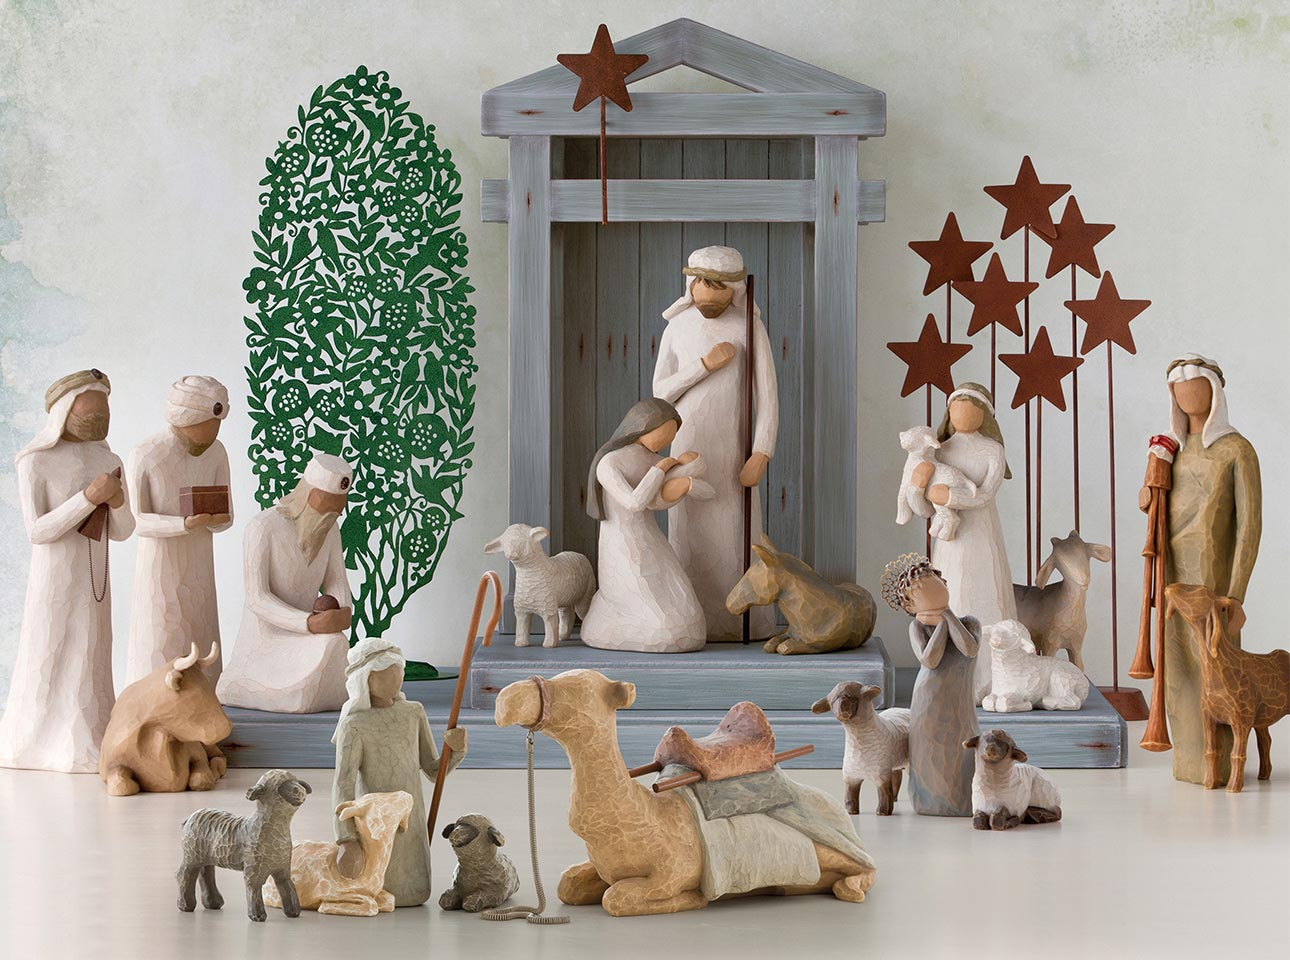 Nativity Set Displays | Hand-Sculpted Figures | Willow Tree on christmas plans, train plans, halloween plans, temple plans, sheep plans, outdoor wooden manger plans, birth plans, church plans, life plans, marriage plans, sleigh plans,